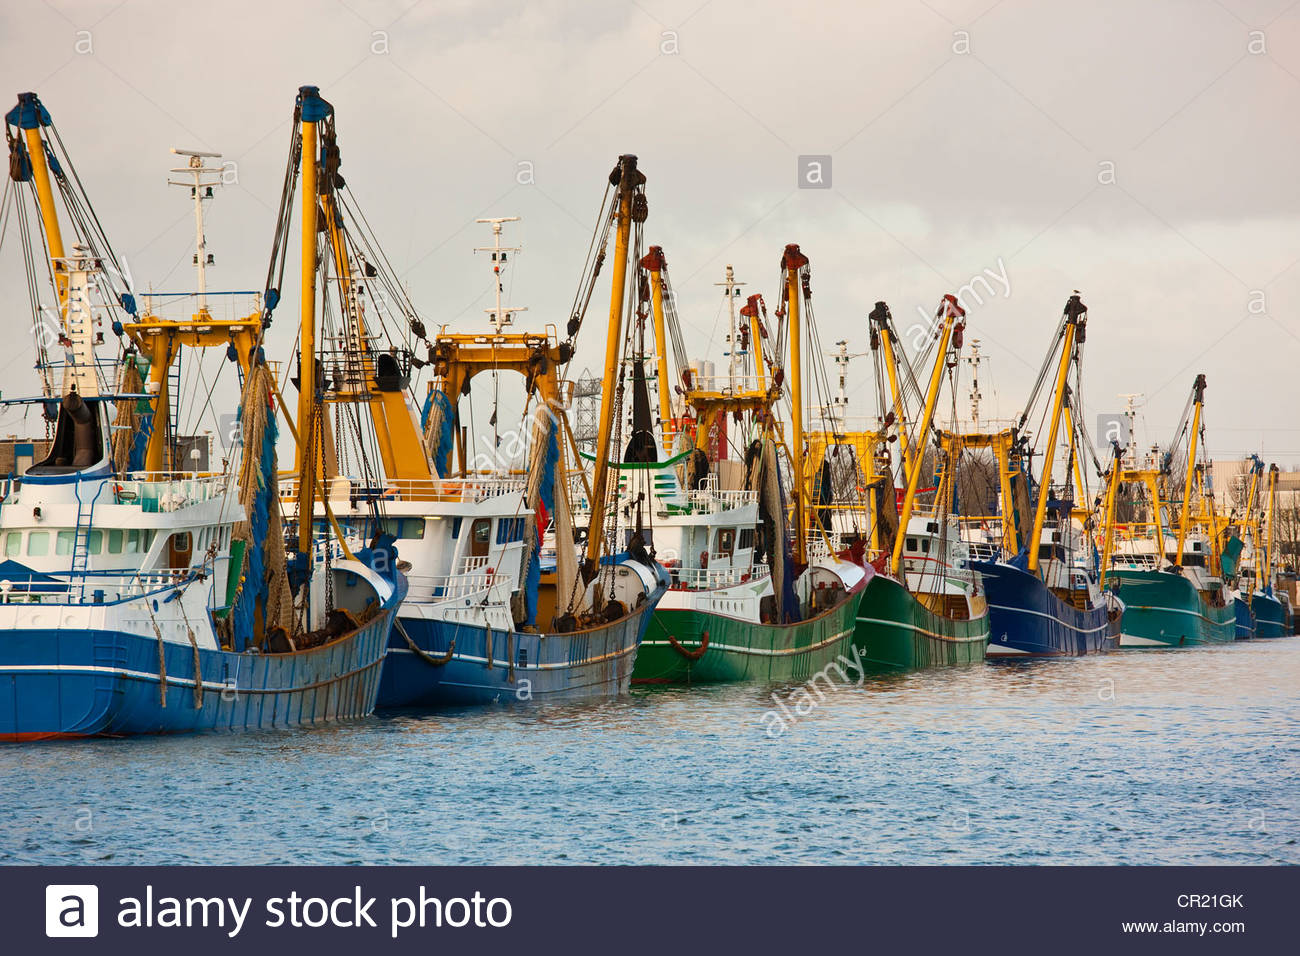 Trawler fleet docked at pier - Stock Image